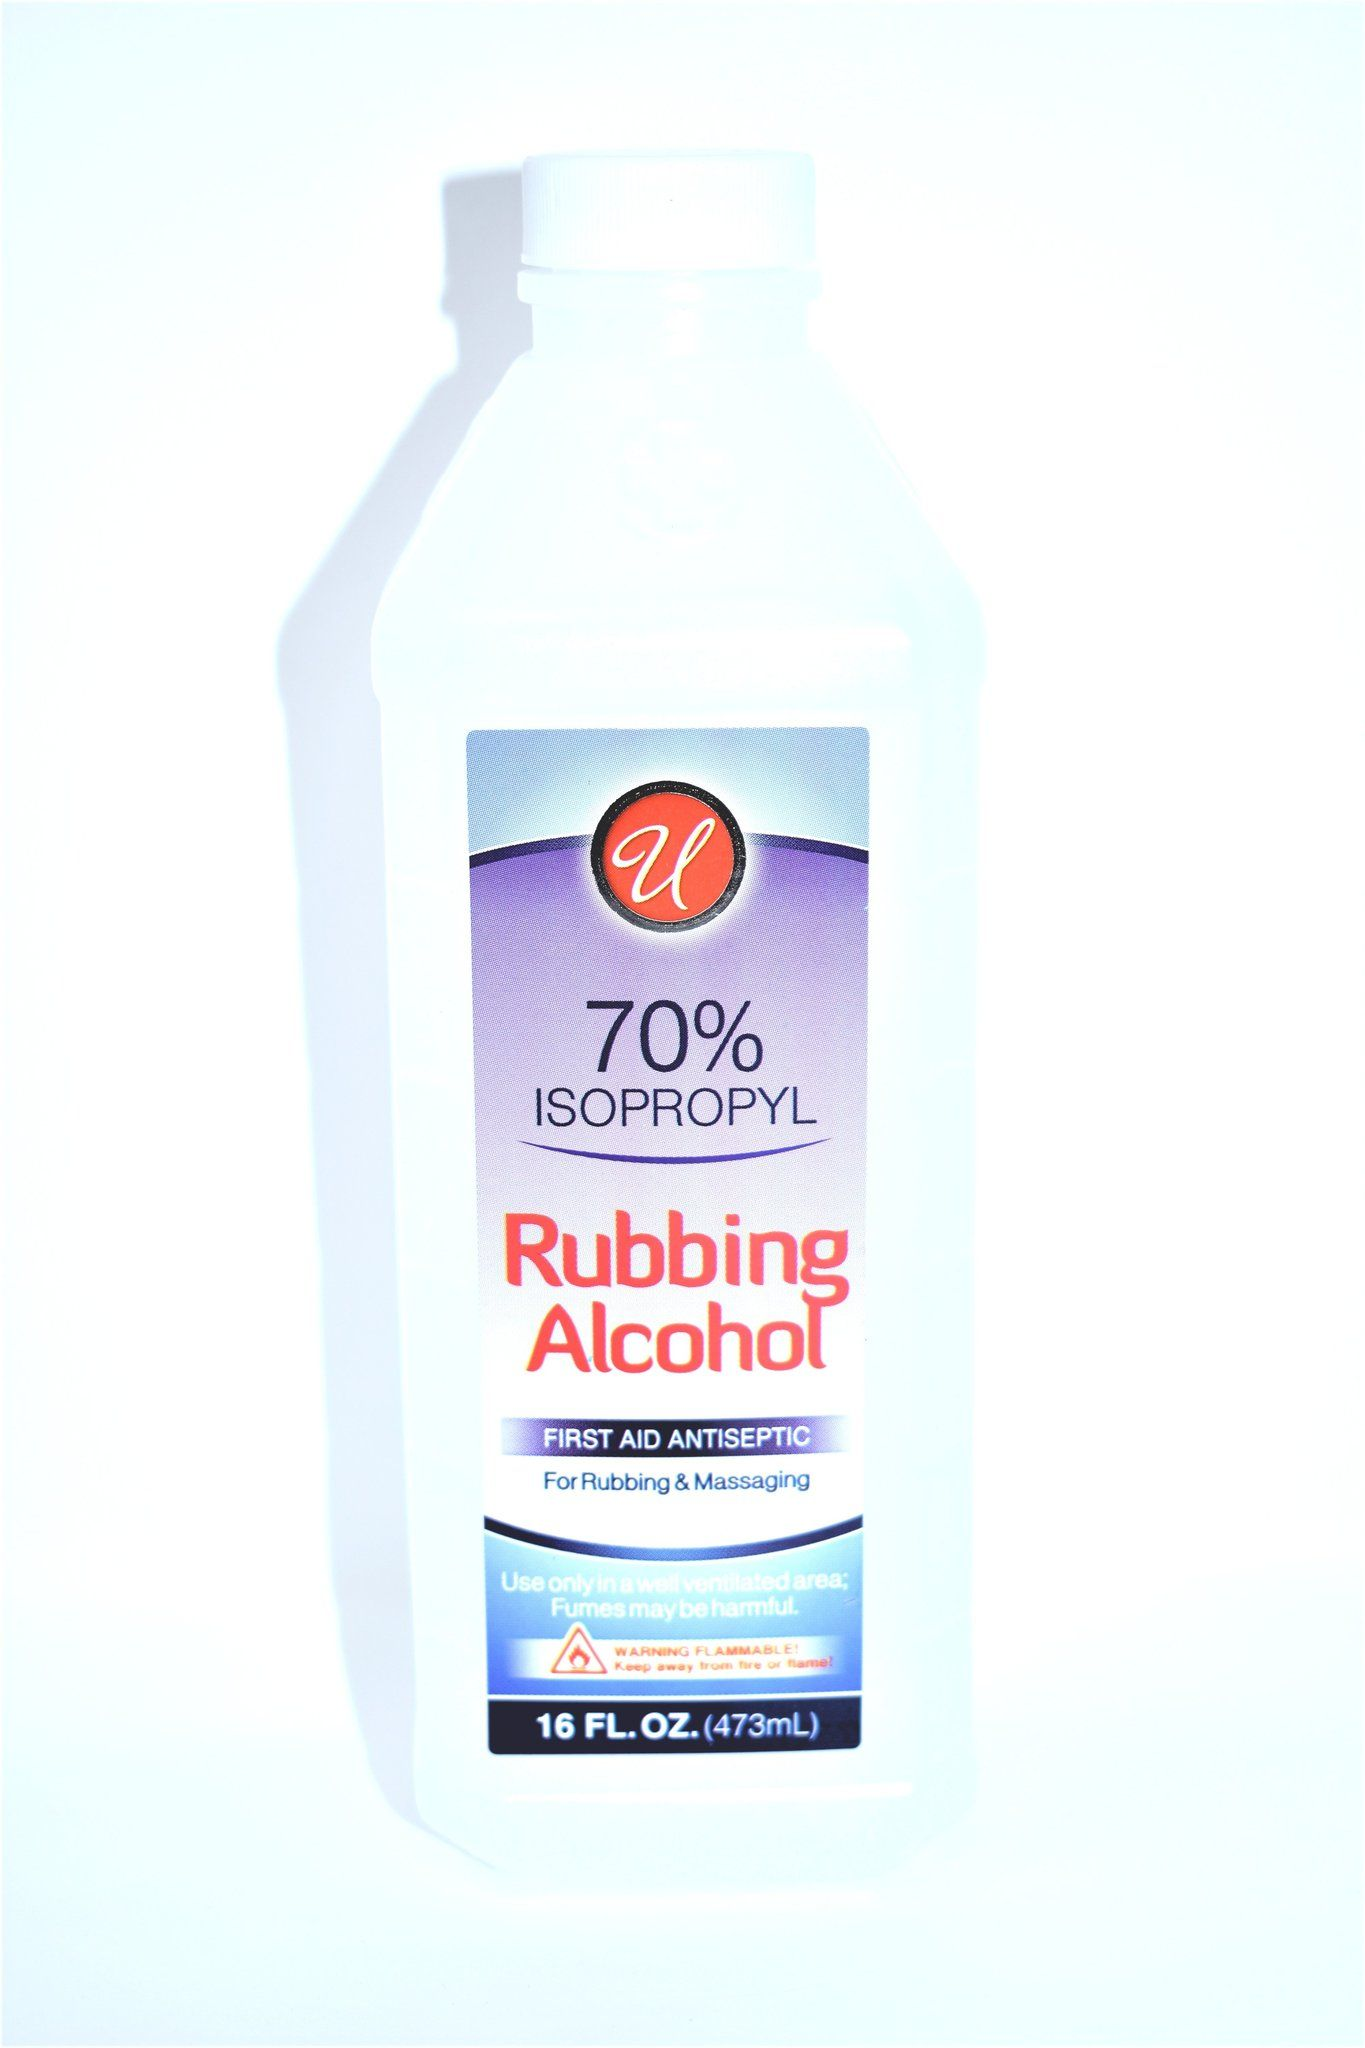 Universal 70% Isopropyl Rubbing Alcohol, 16 fl oz | First